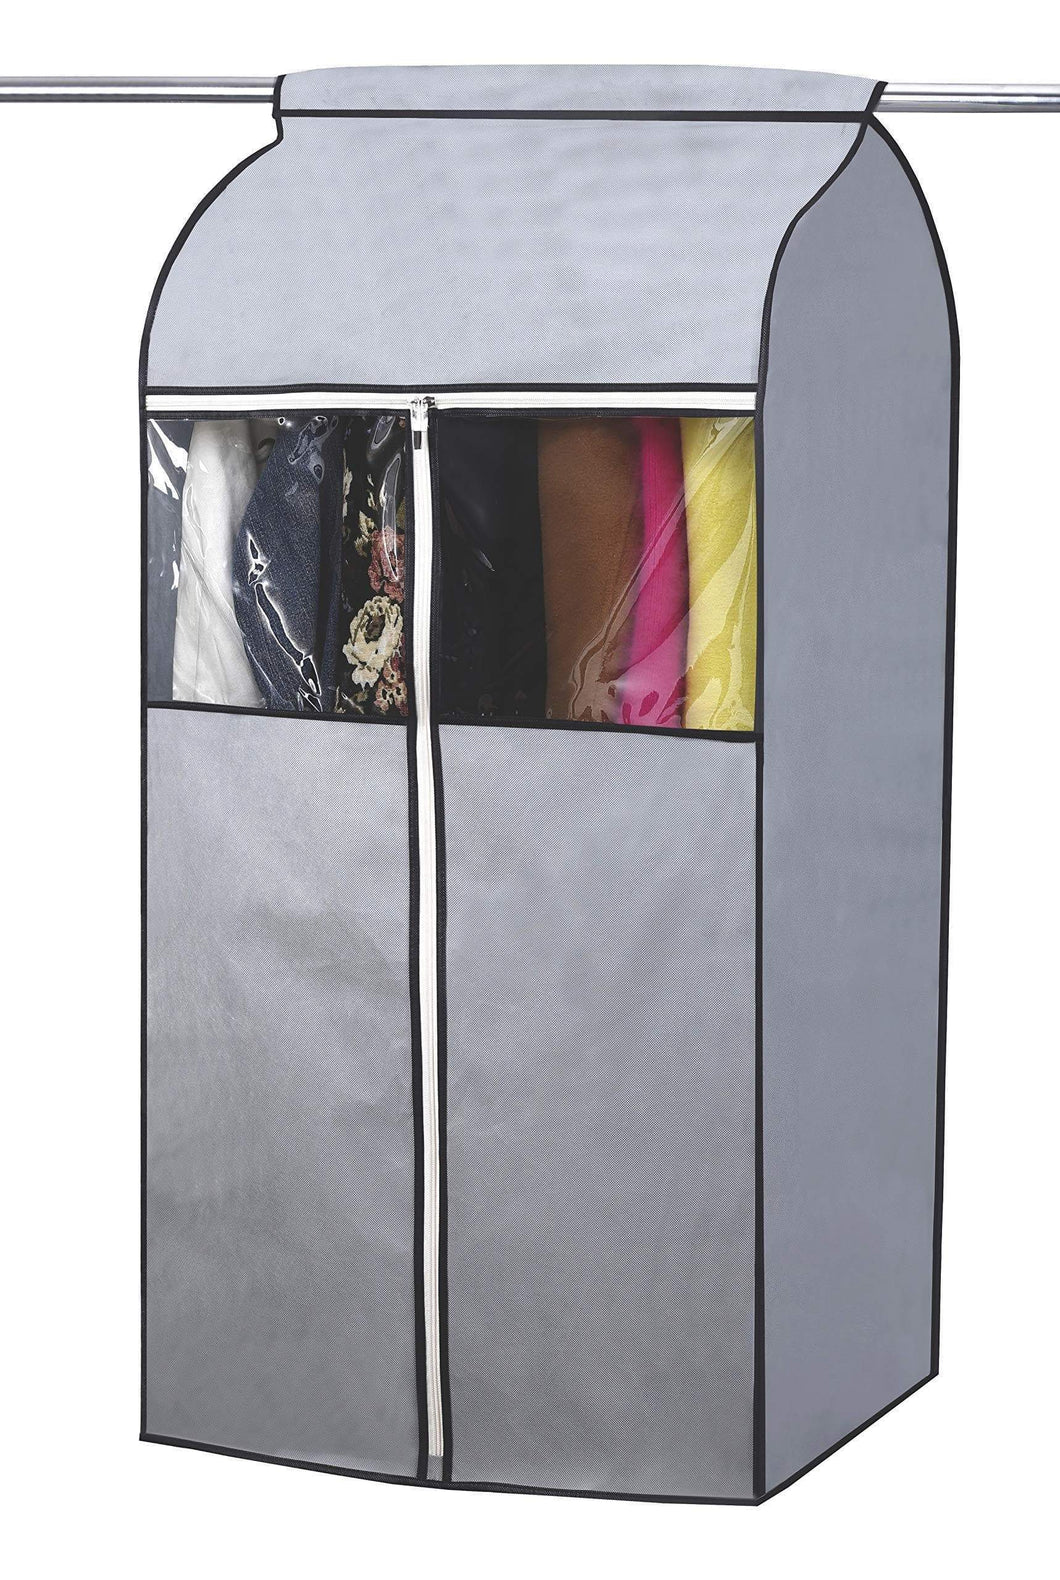 SLEEPING LAMB Garment Bag Organizer Storage with Clear PVC Windows Garment Rack Cover Well-Sealed Hanging Closet Cover for Suits Coats Jackets, Grey